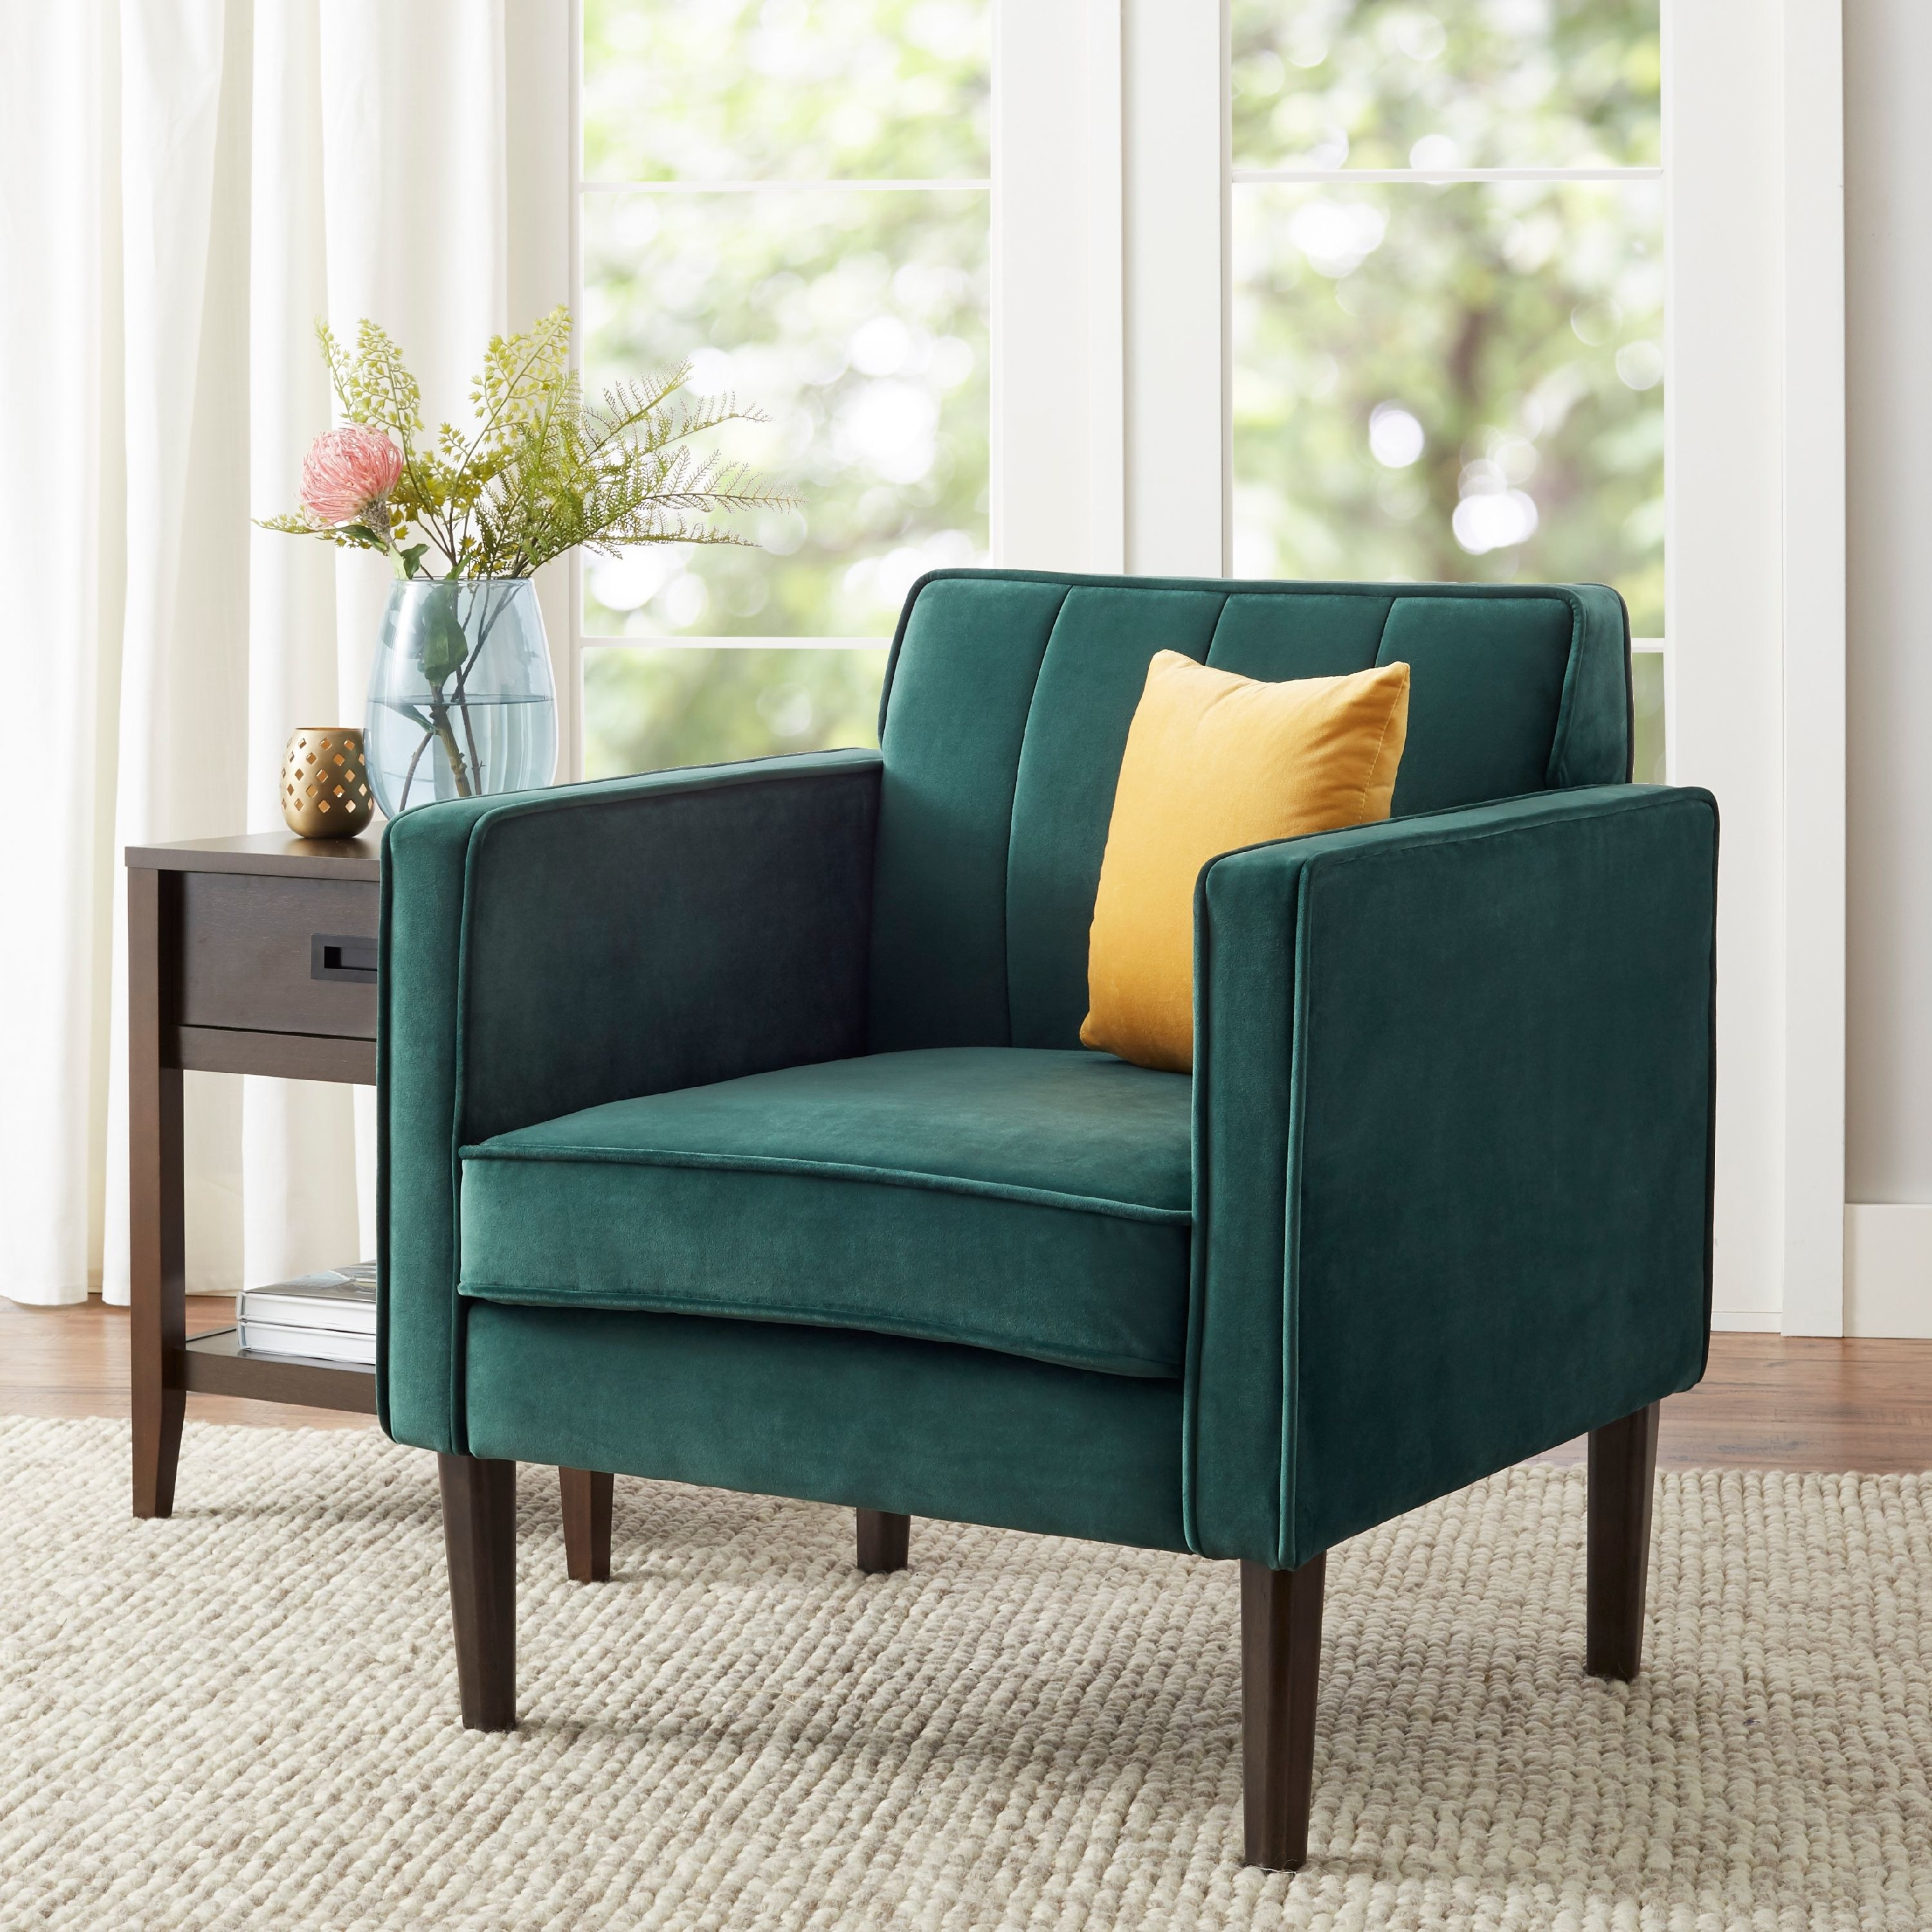 The chair, which has a vintage, midcentury look with a high square back and large square sidepiece armrests, in emerald